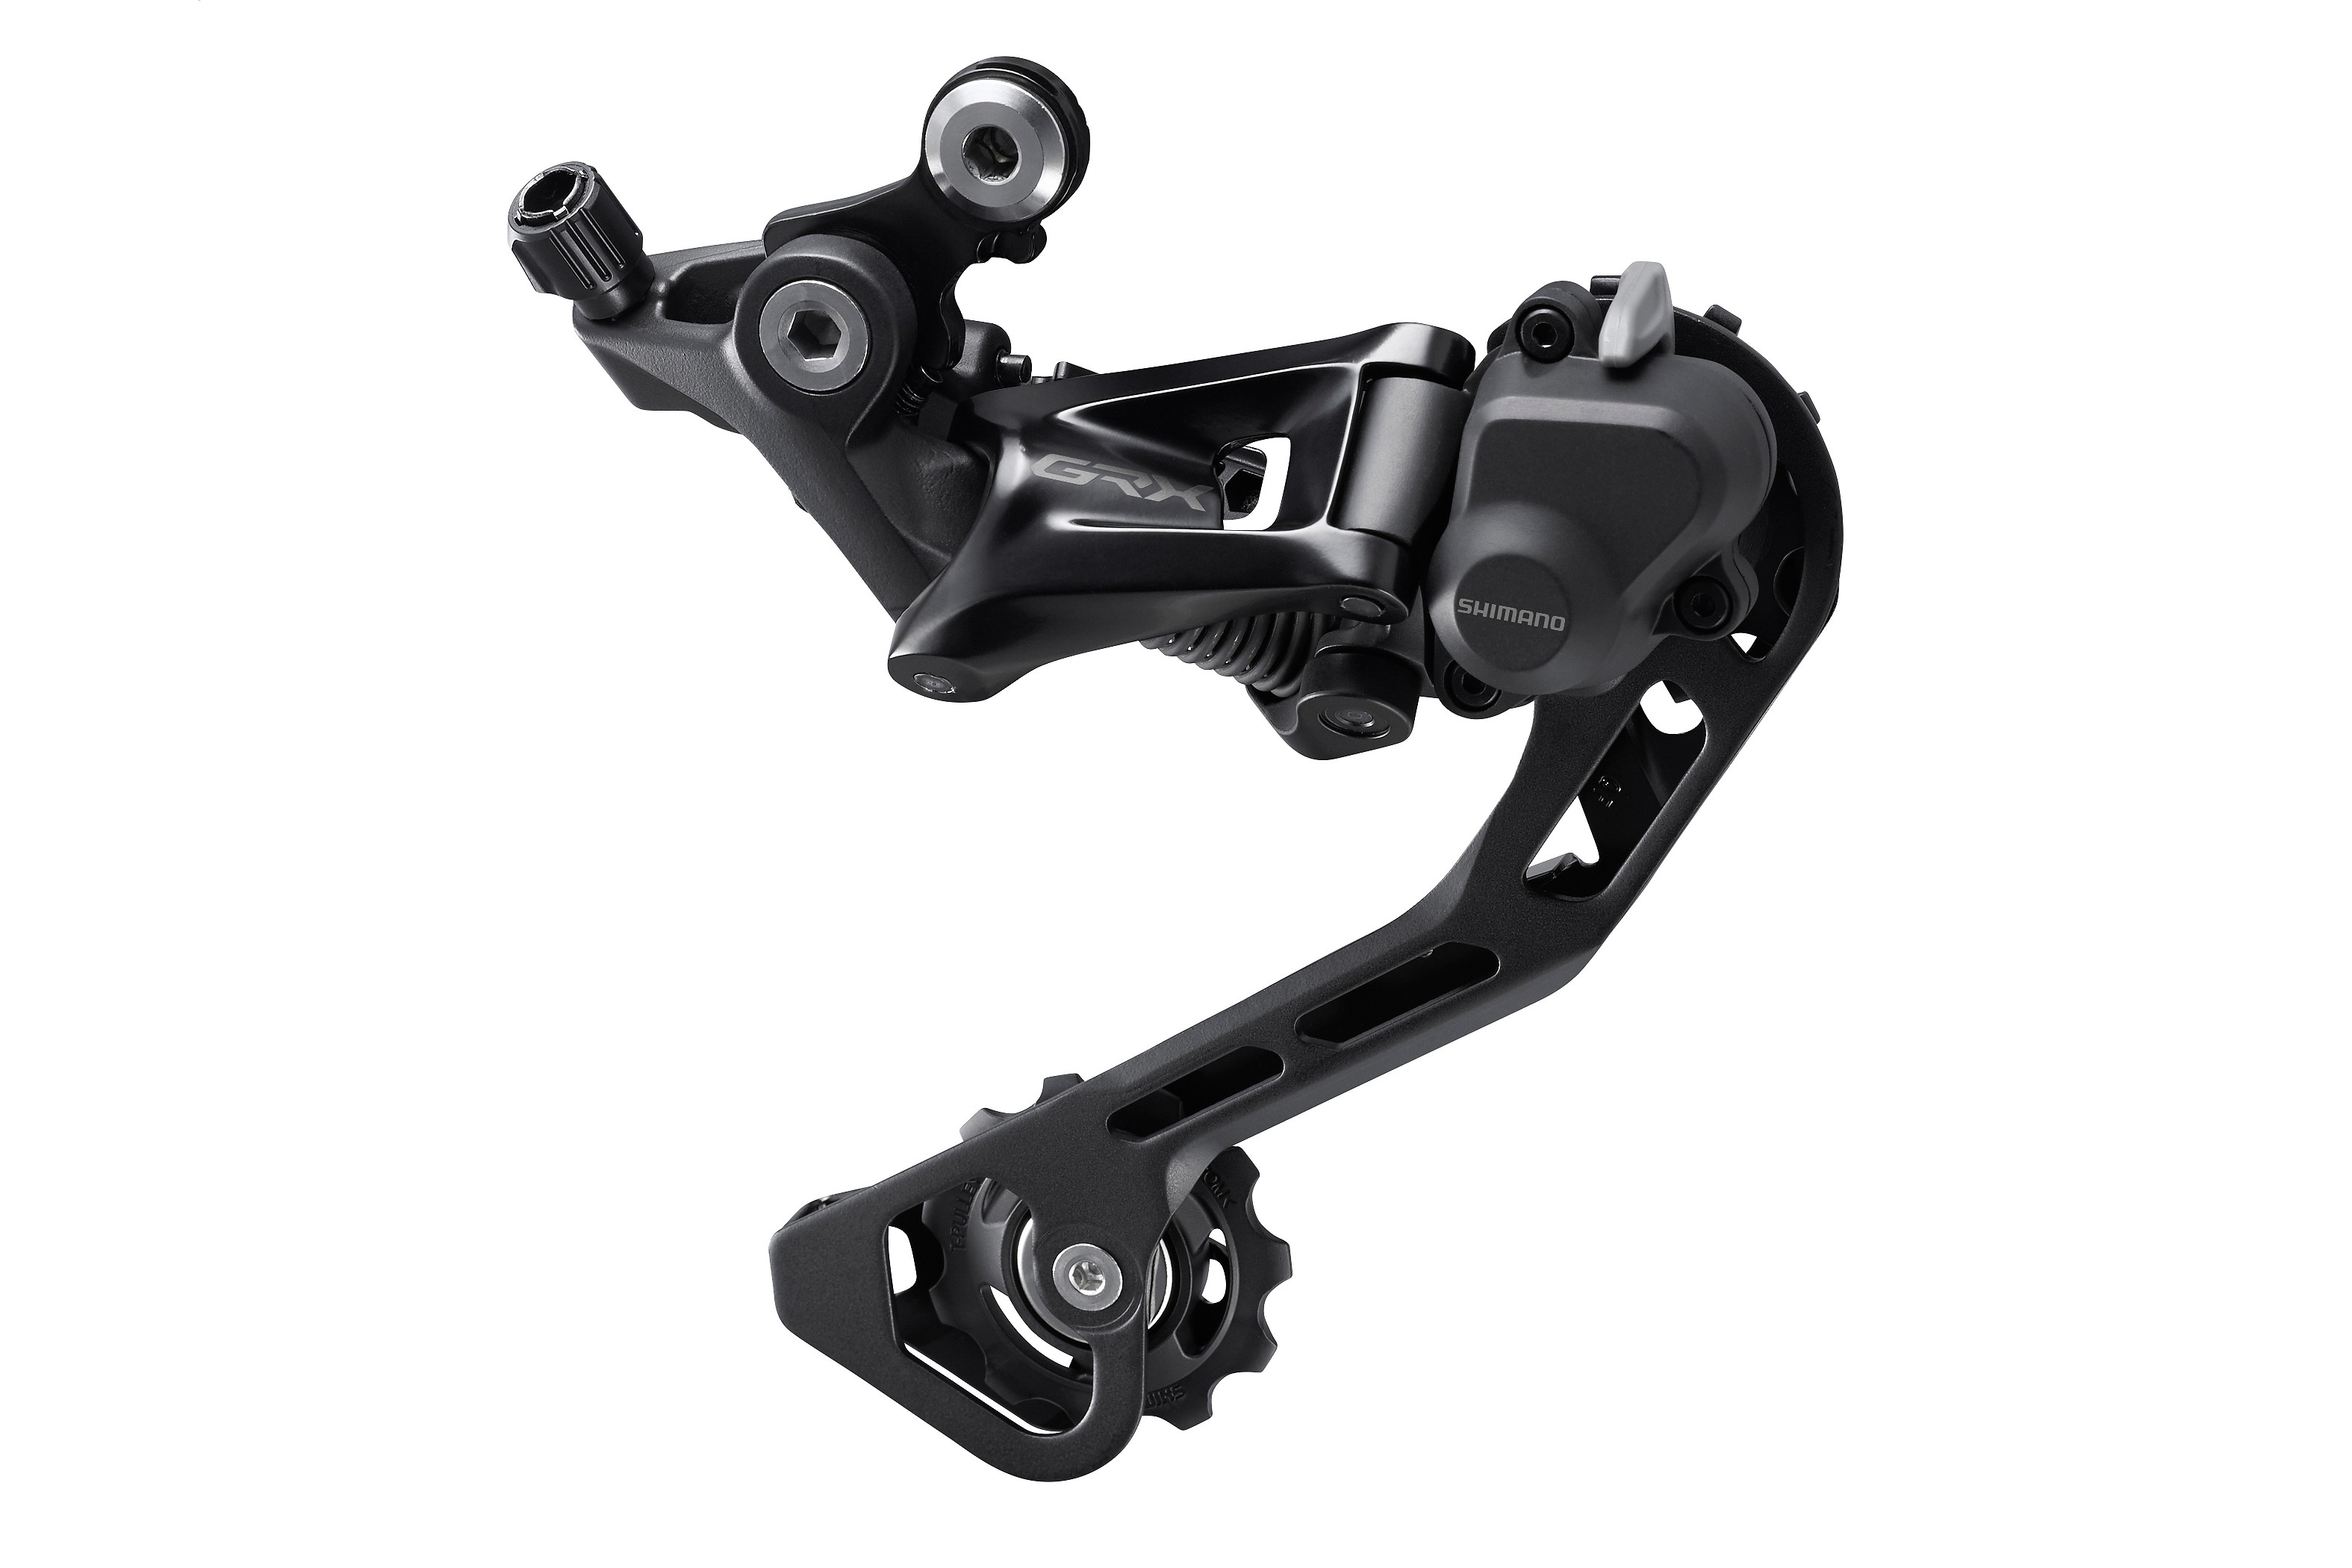 10-speed Shimano GRX bicycle rear derailleur